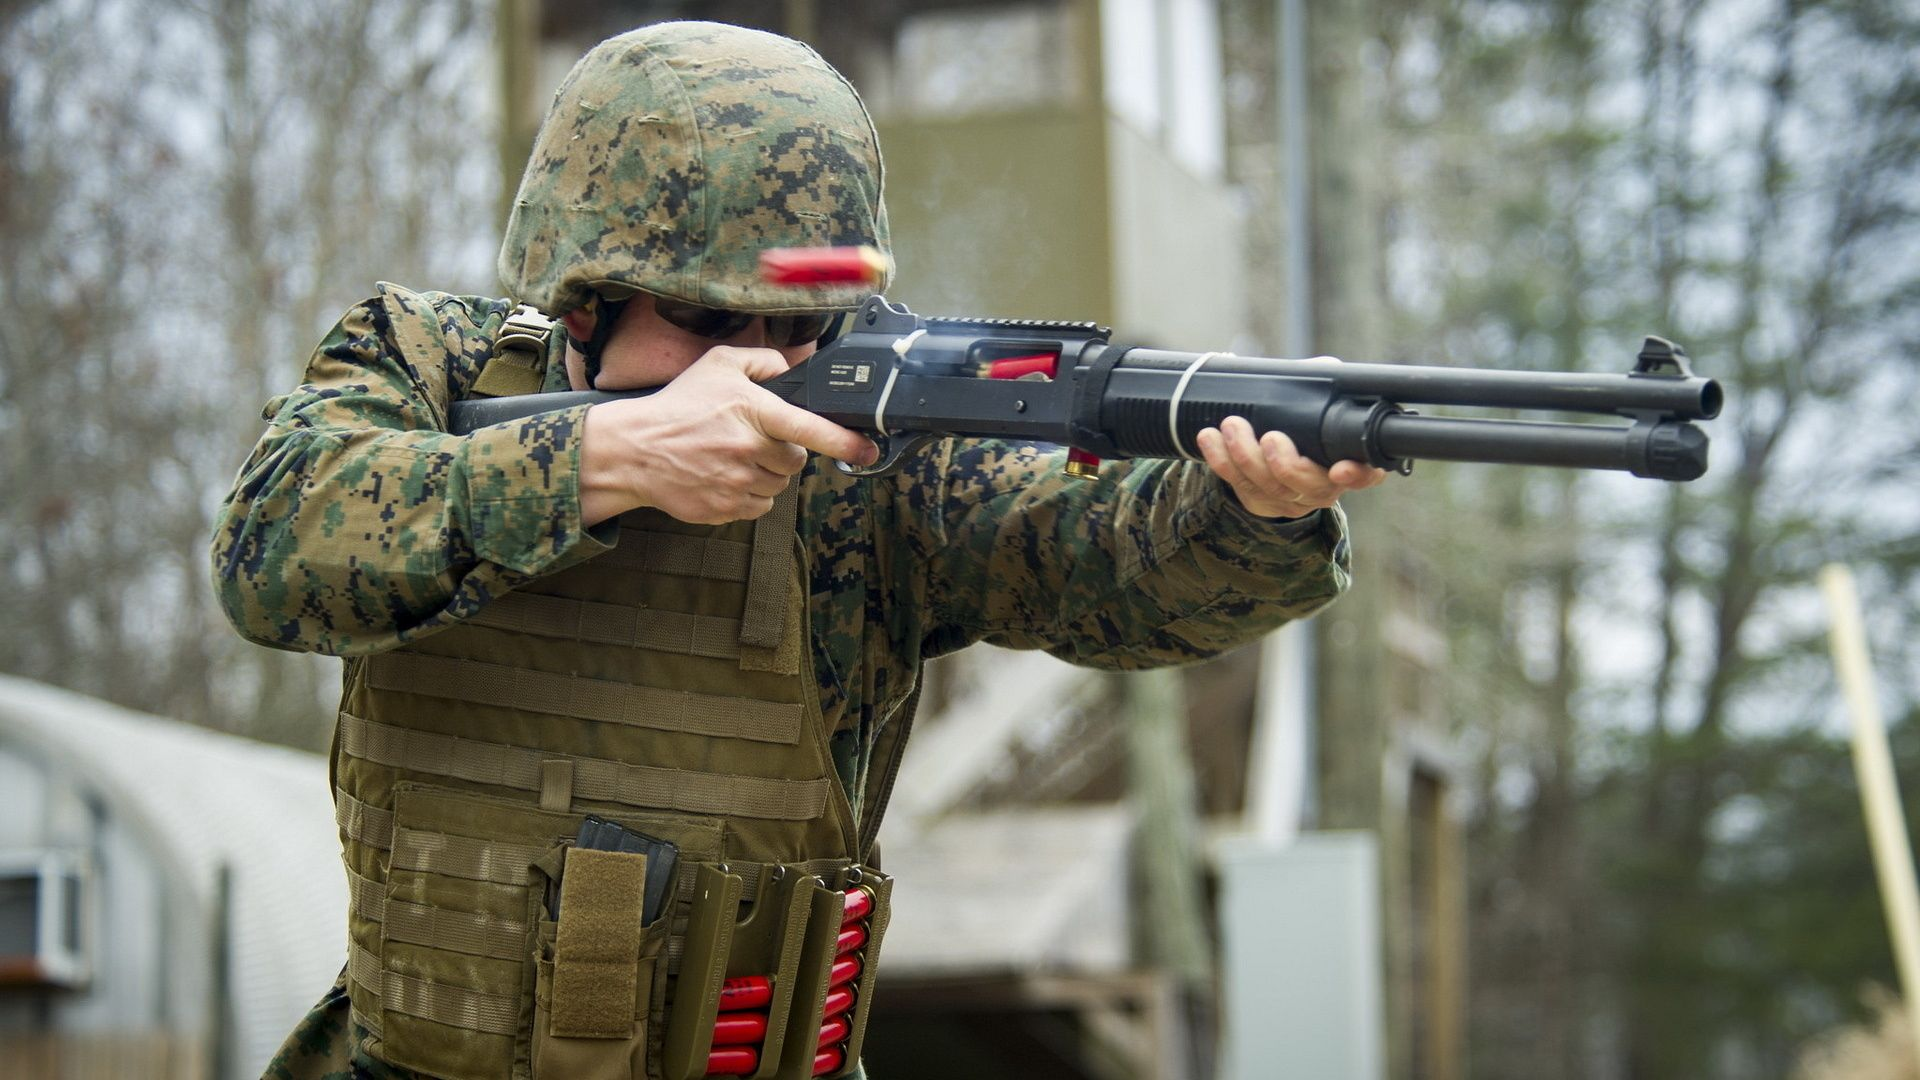 United States Marine Corps, Soldiers, Weapons